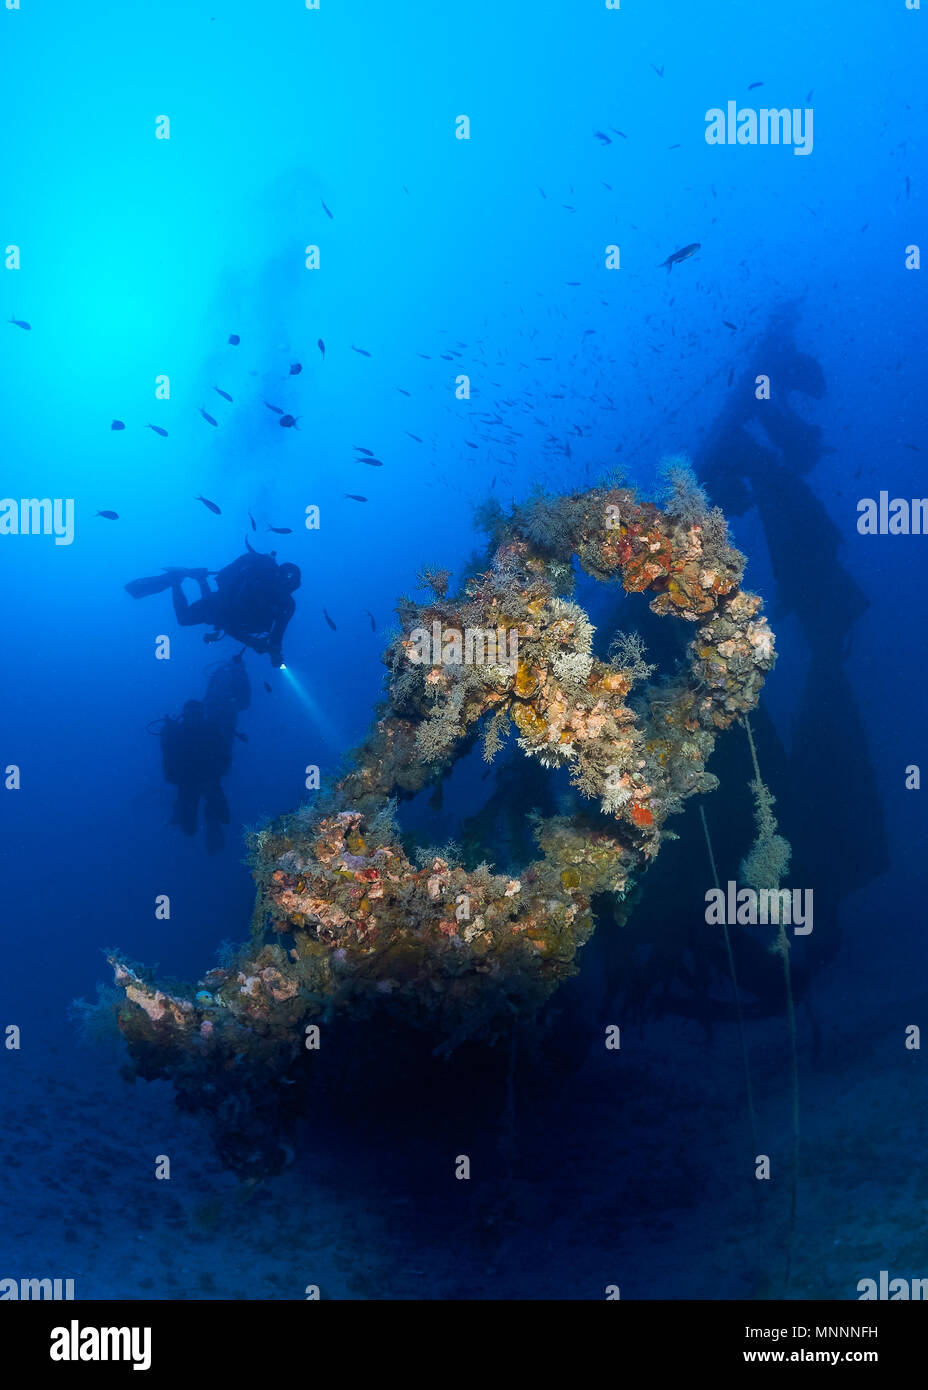 Underwater scene with various scuba divers at the Joker wreck, a deep dive site (-48m) at Ses Salines Natural Park (Formentera,Balearic Islands,Spain) - Stock Image